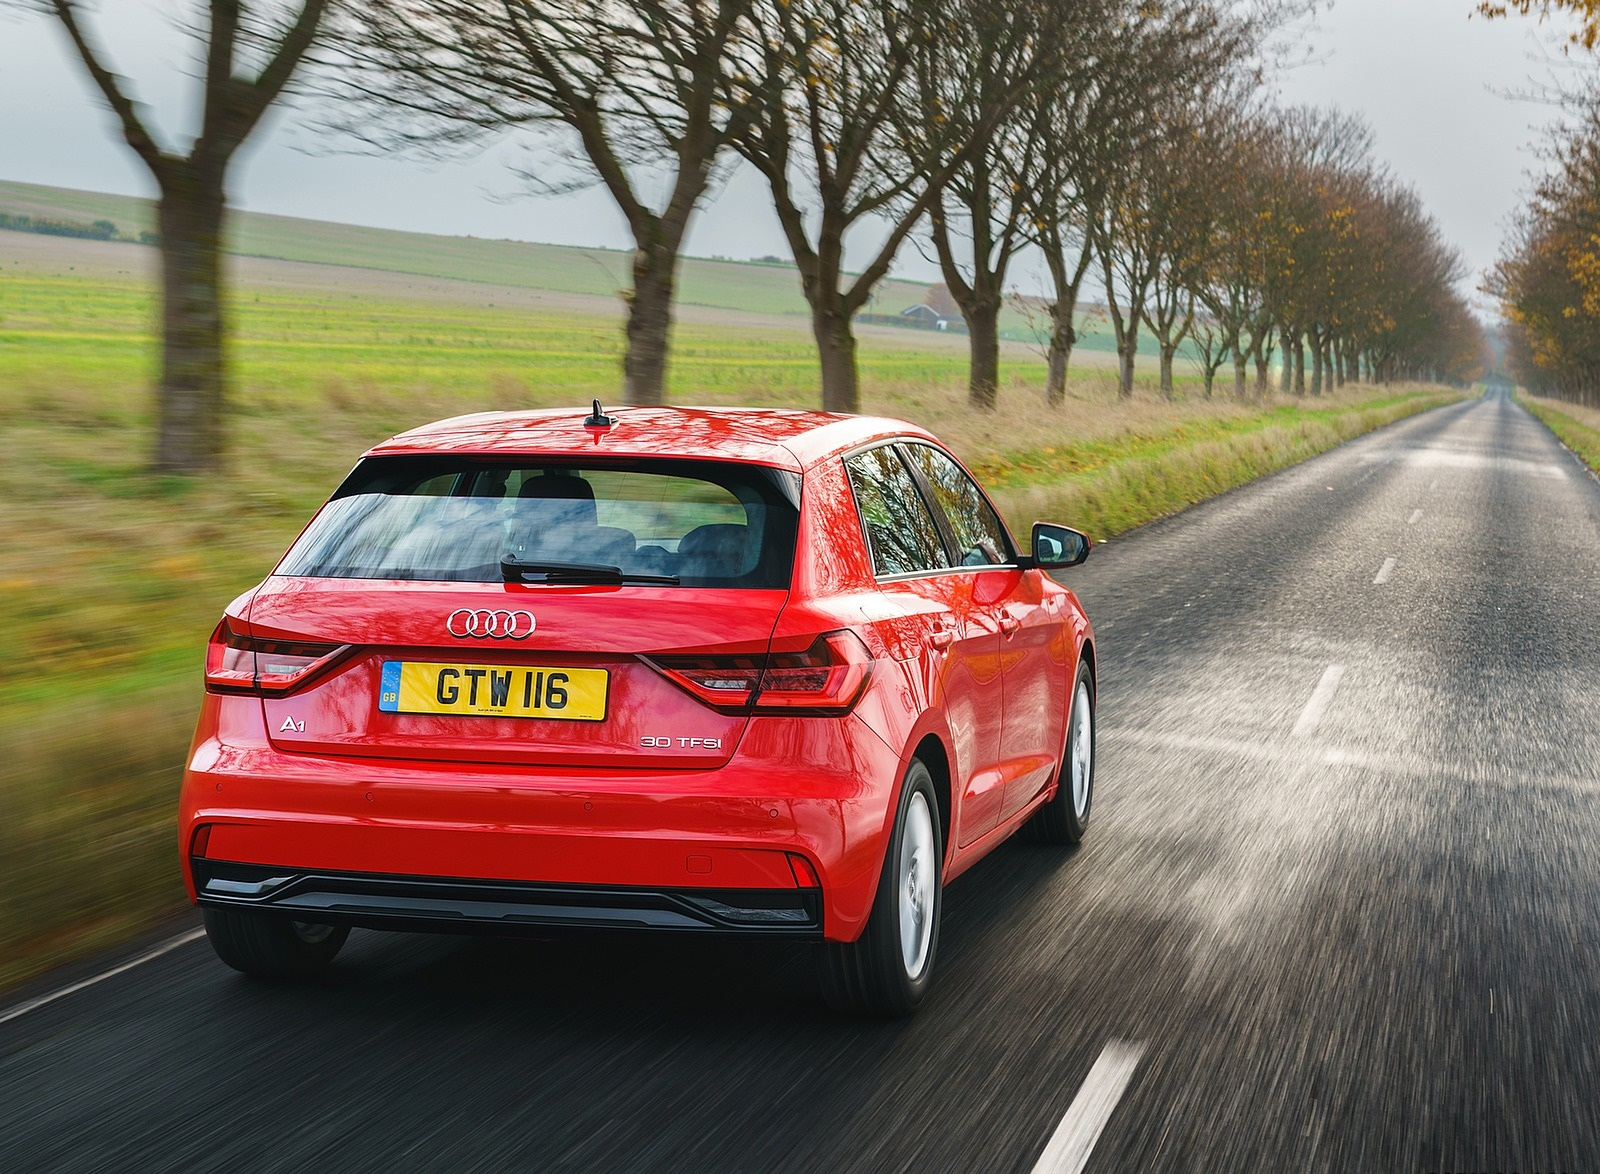 2019 Audi A1 Sportback 30 TFSI (UK-Spec) Rear Wallpapers (3)